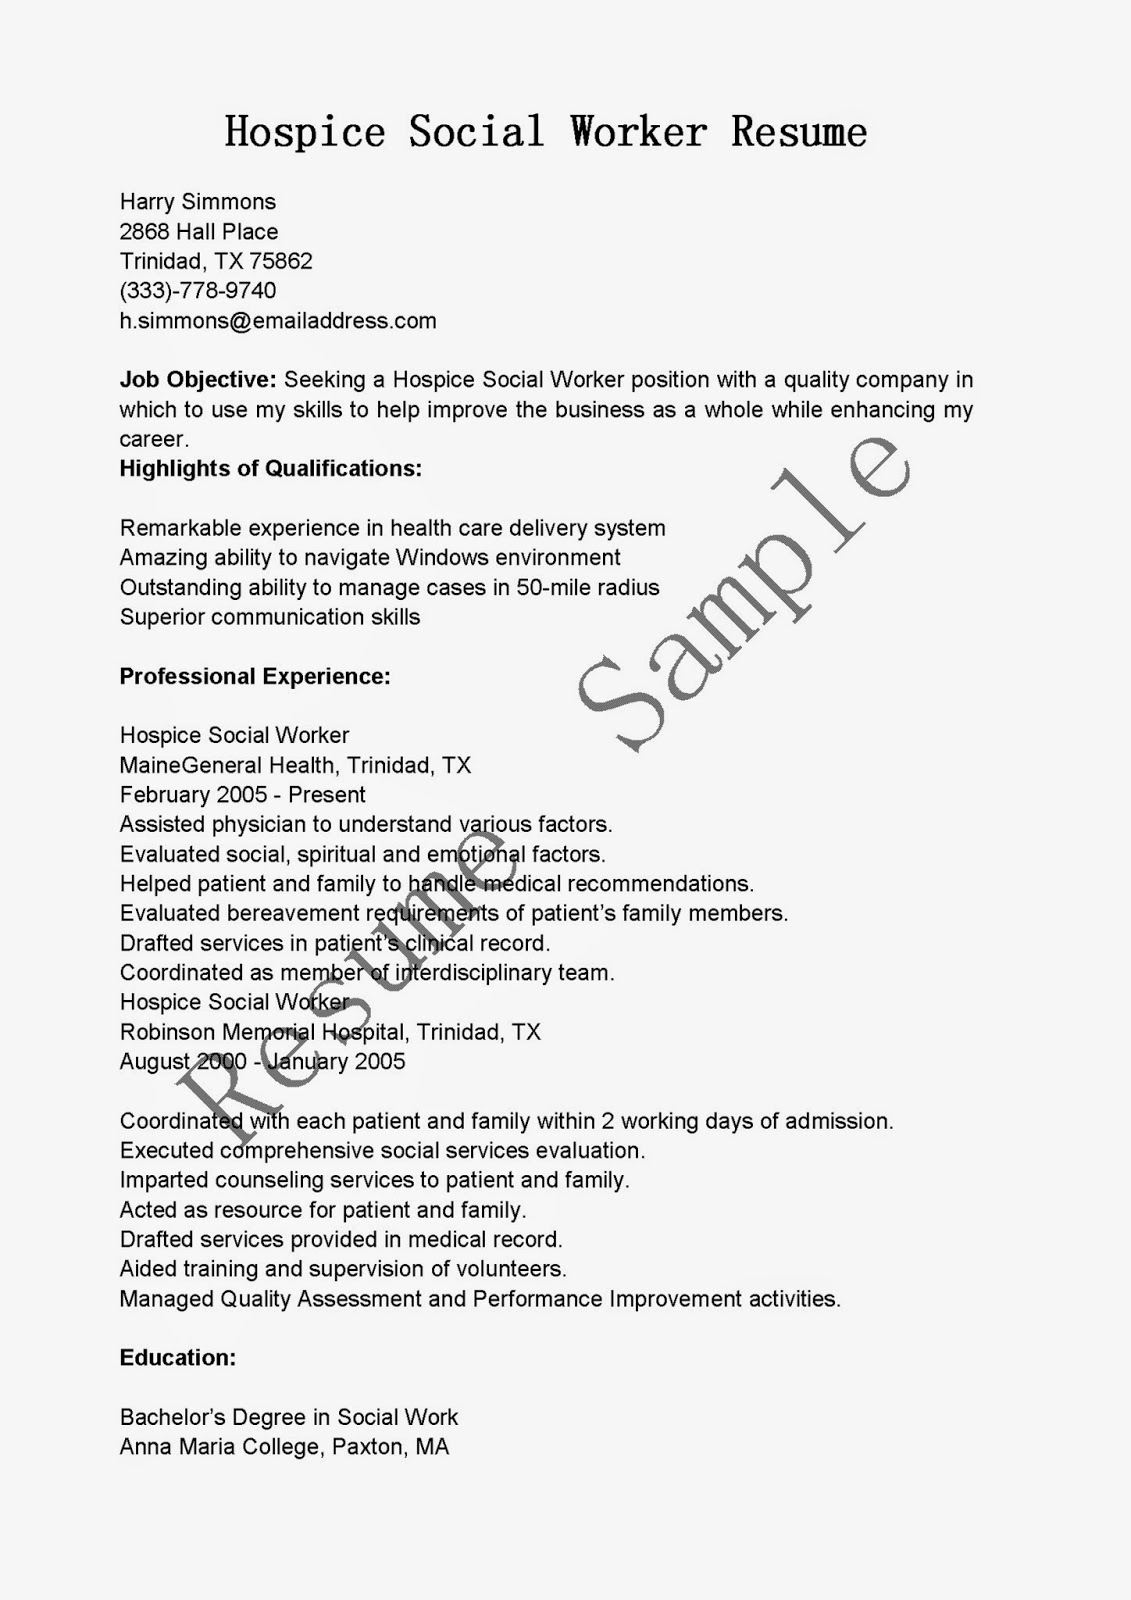 medical assistant resume resumesamples net medical assistant resume resumesamples net